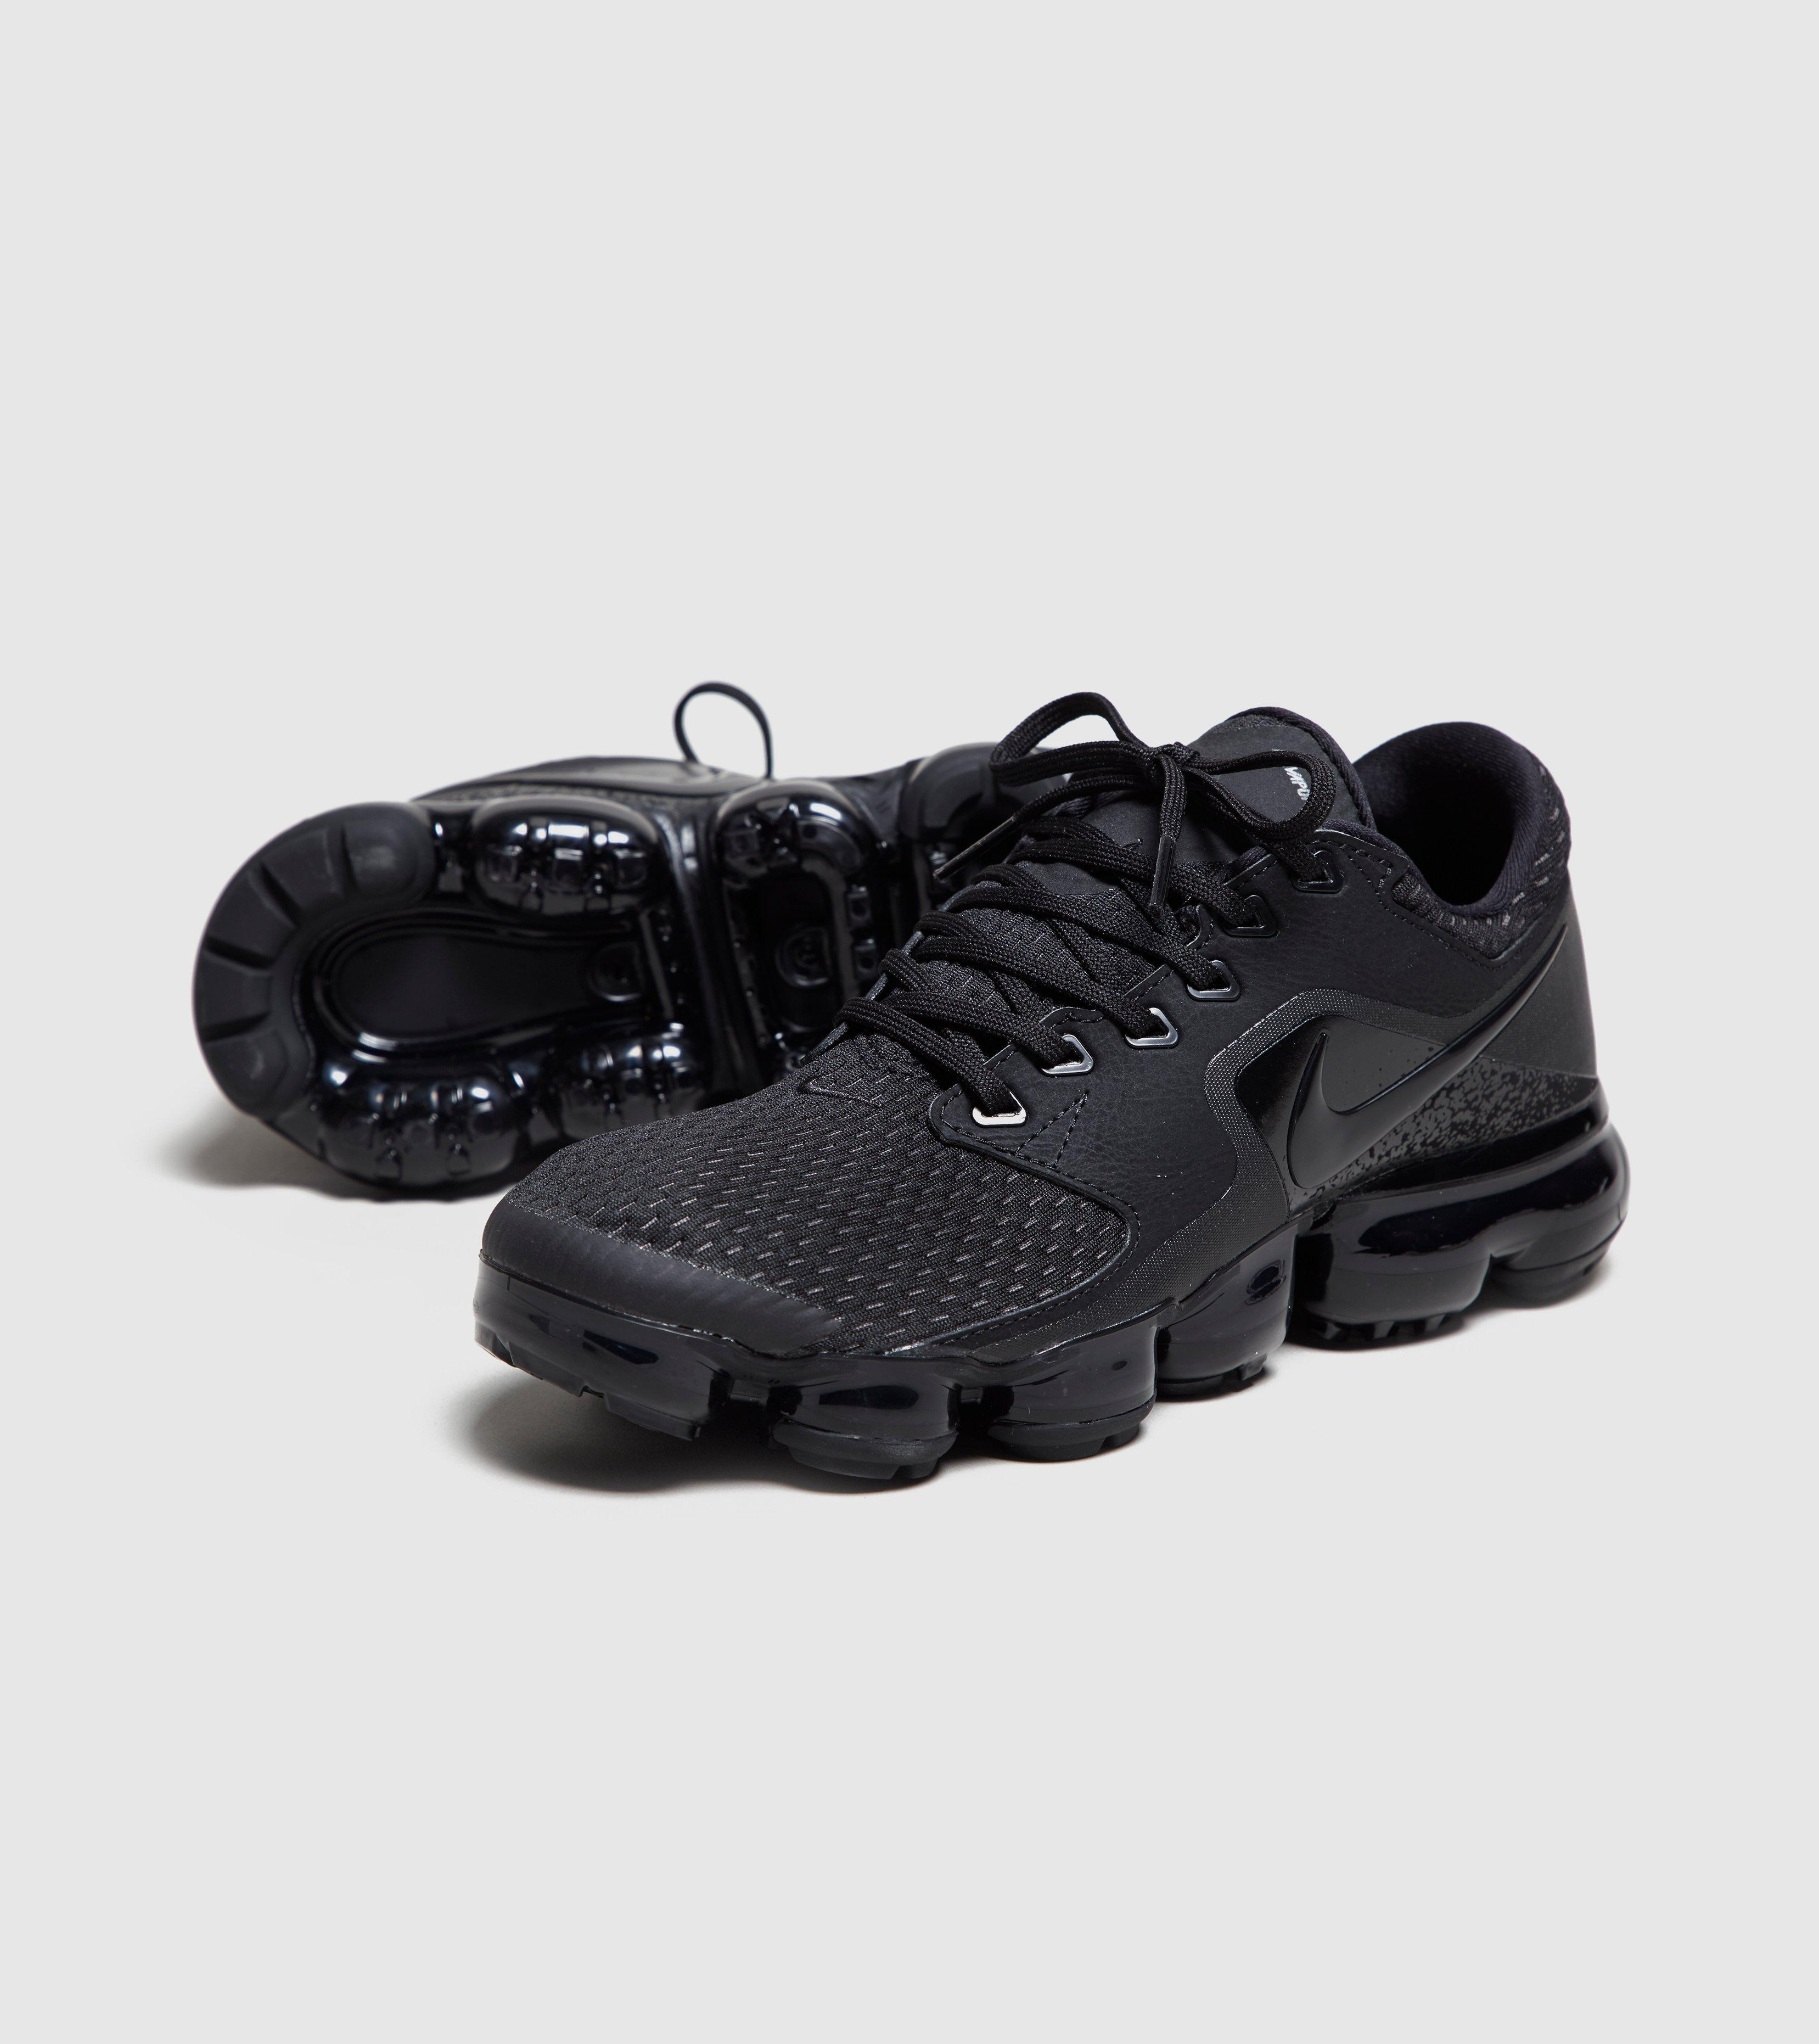 180d51bba7f7 ... coupon lyst nike air vapormax mesh womens in black 84775 a245f